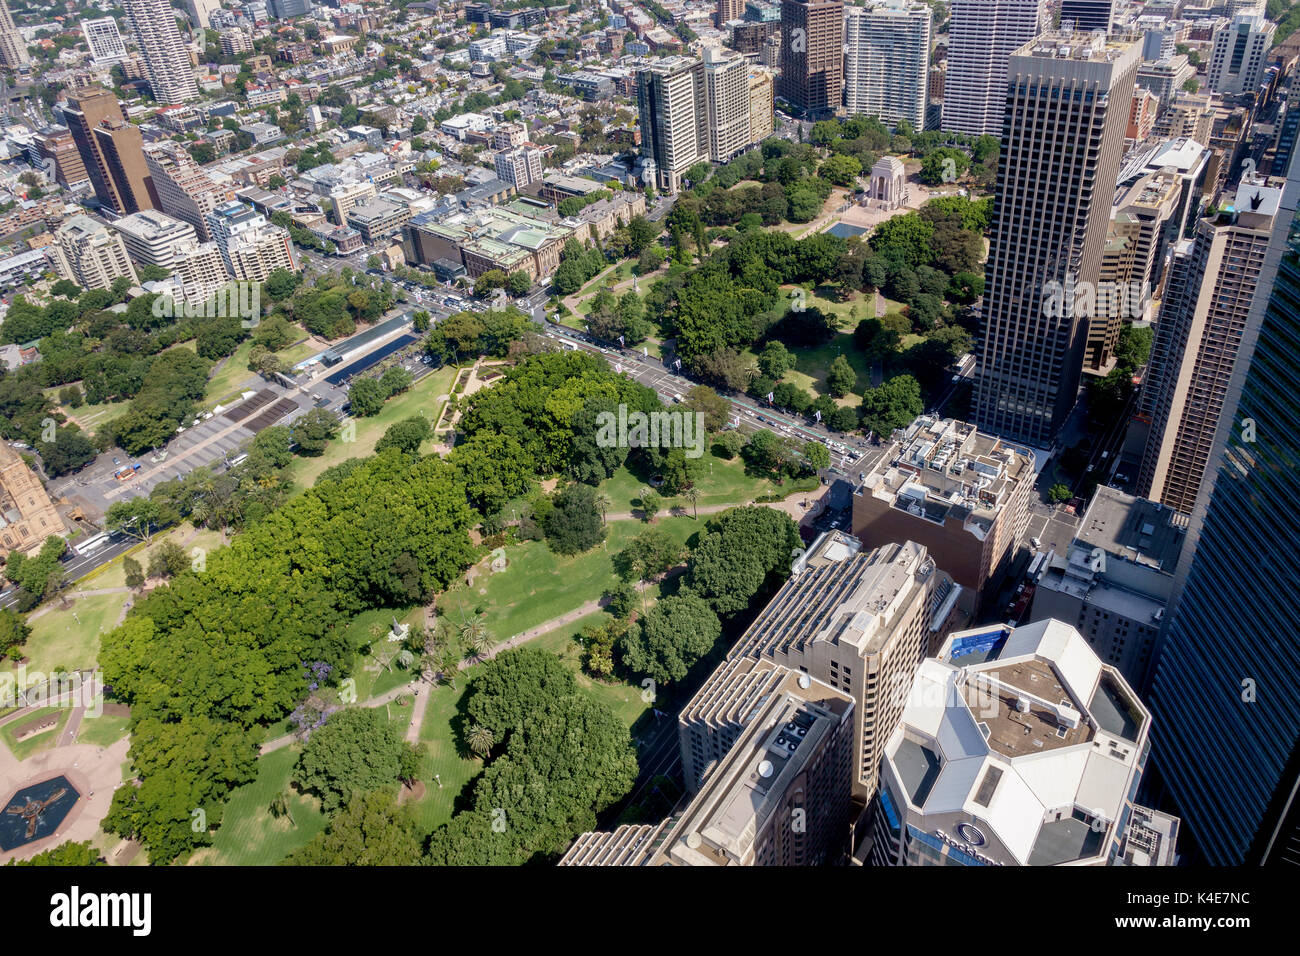 Aerial View Of Hyde Park Sydney From The Sydney Tower Eye - Stock Image